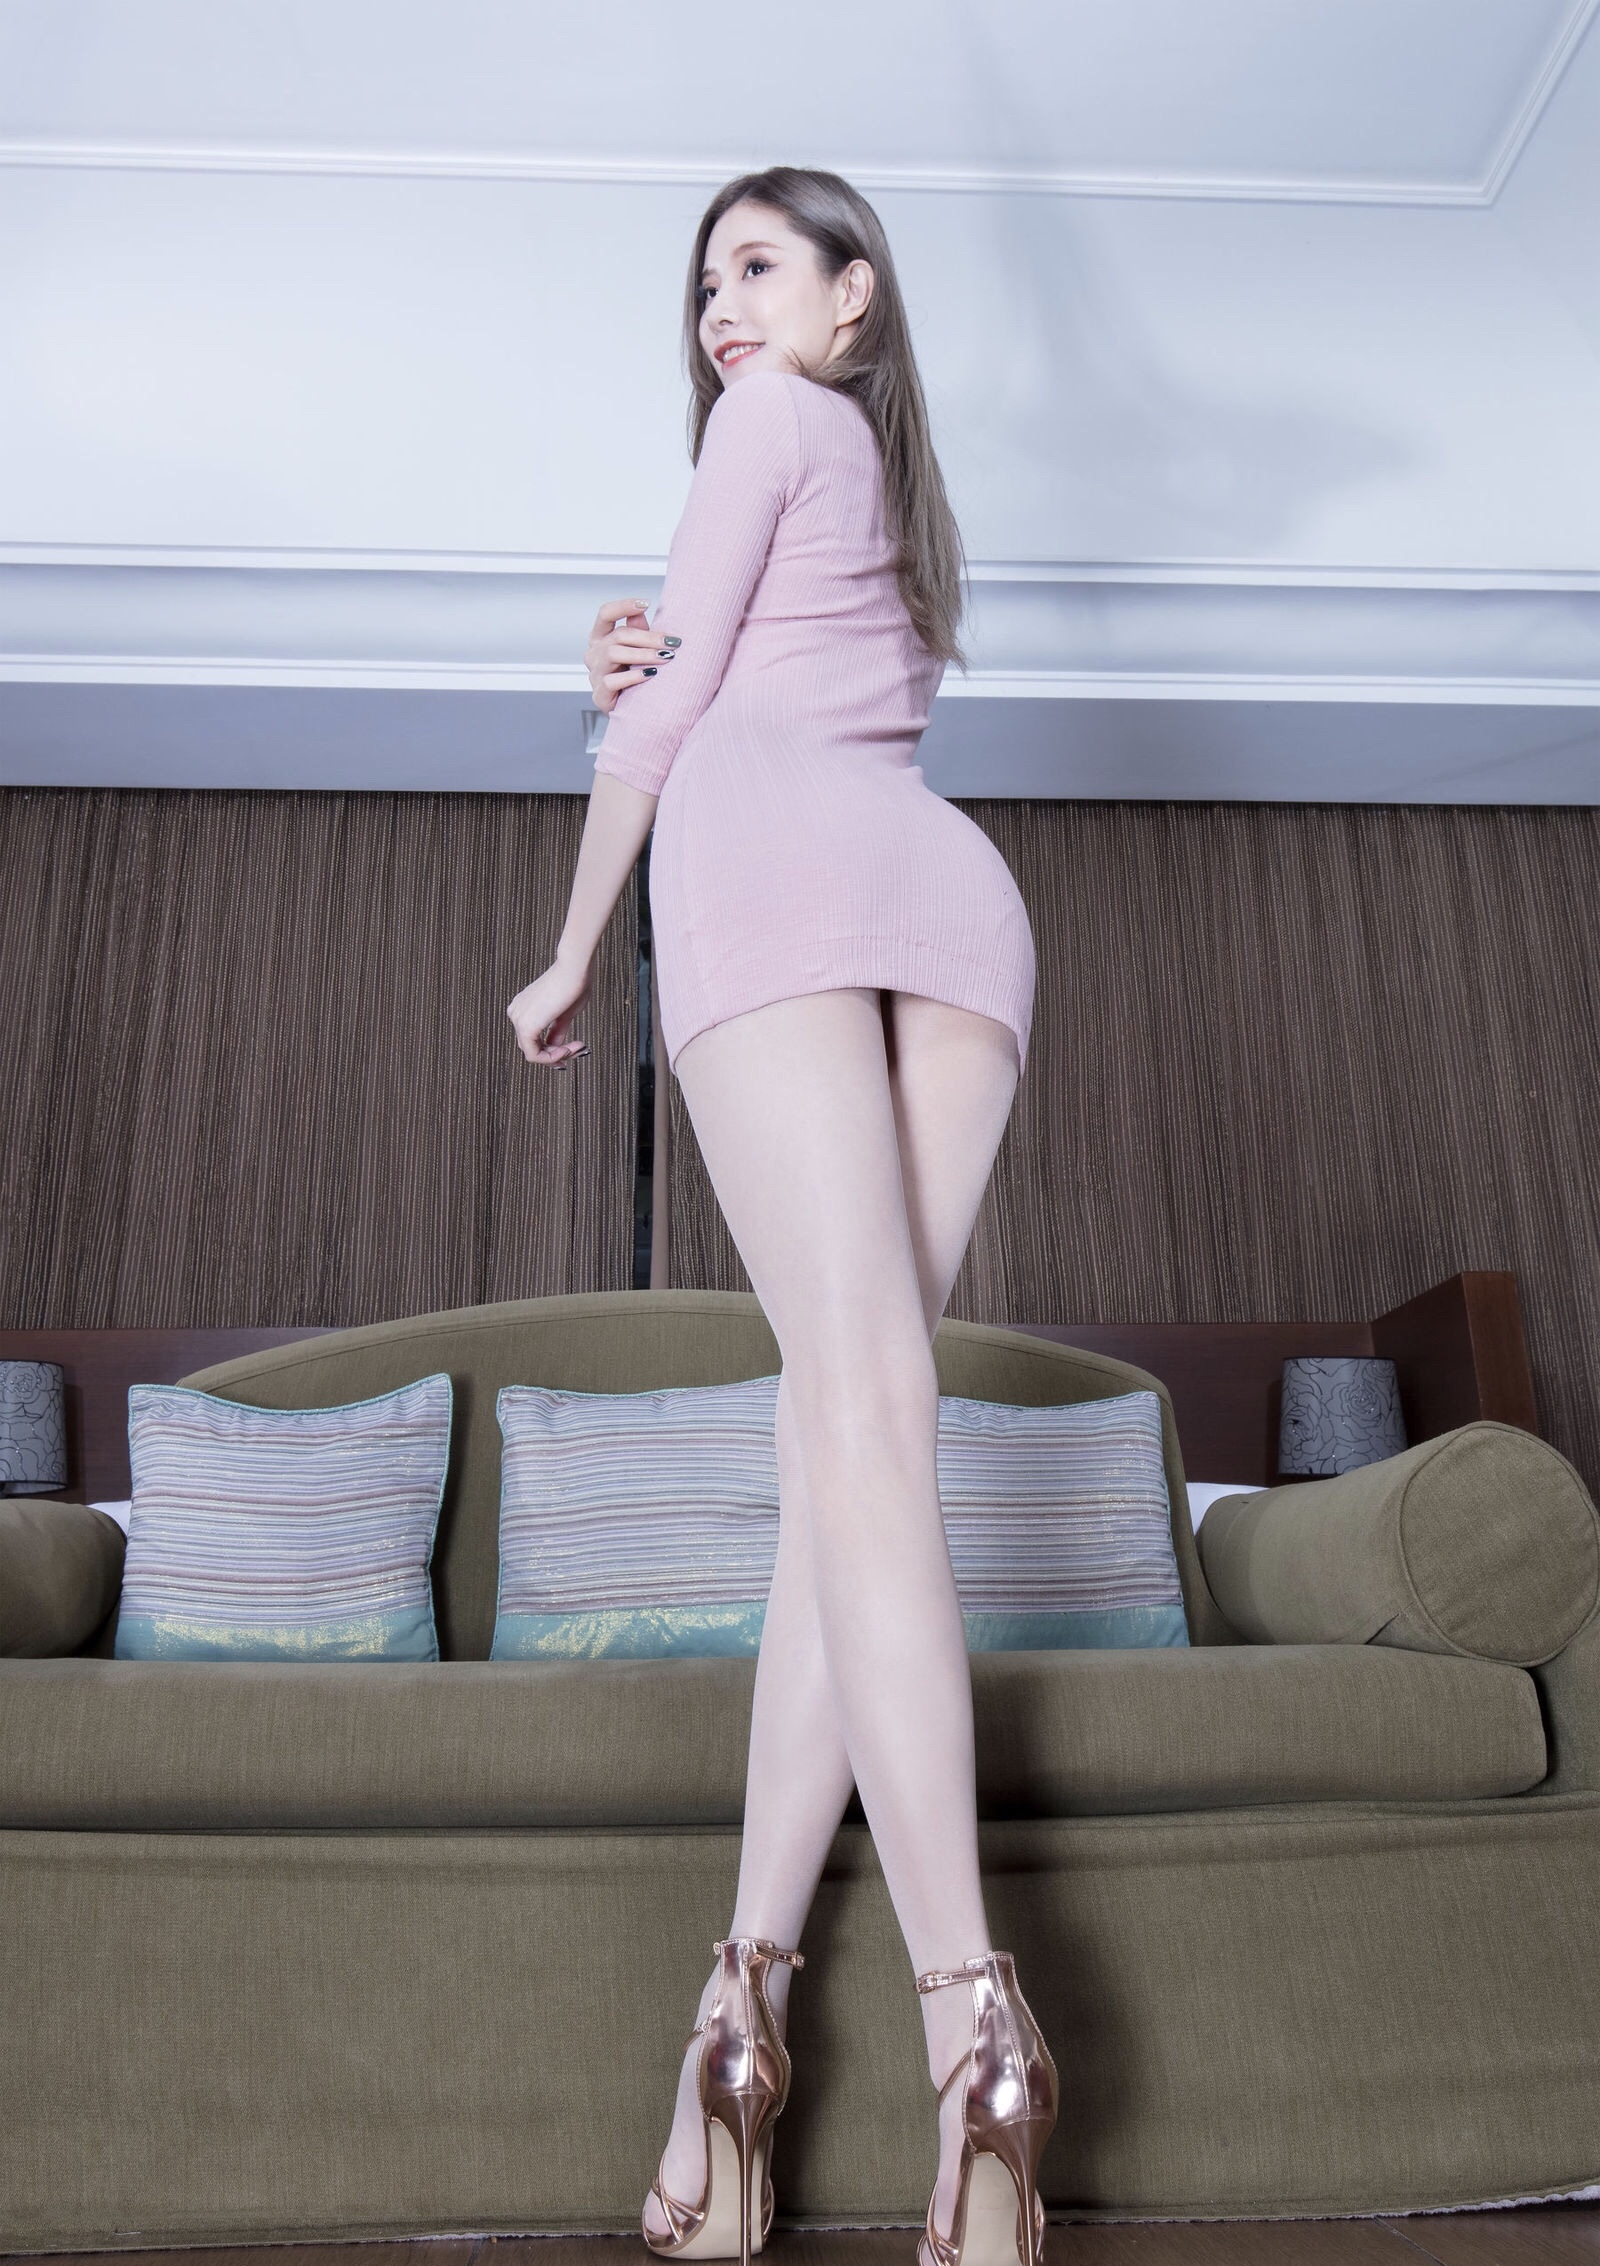 abby's beauty legs-2020 7